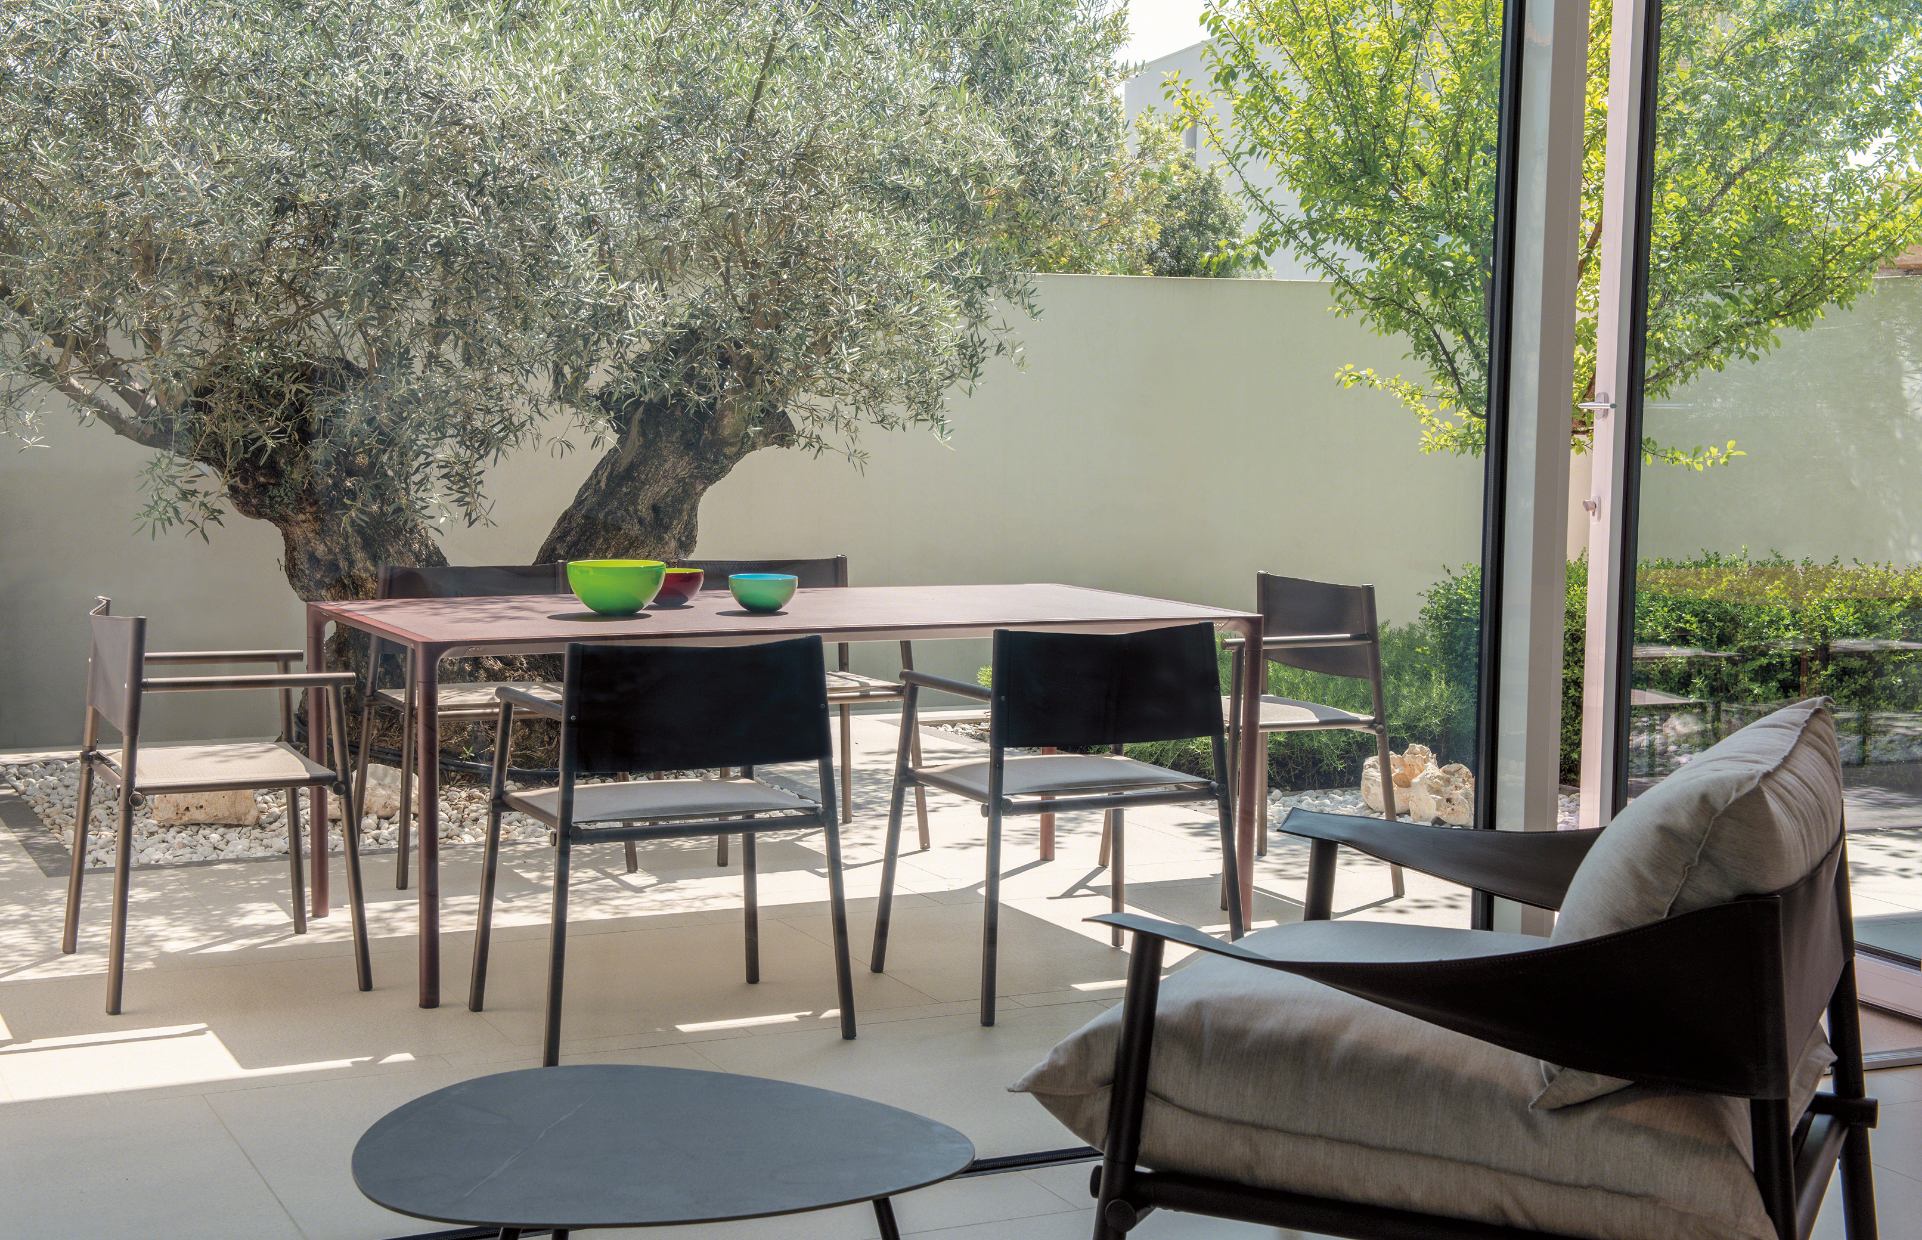 Outdoor pation lounge with chairs, long table for dining, and round side tables